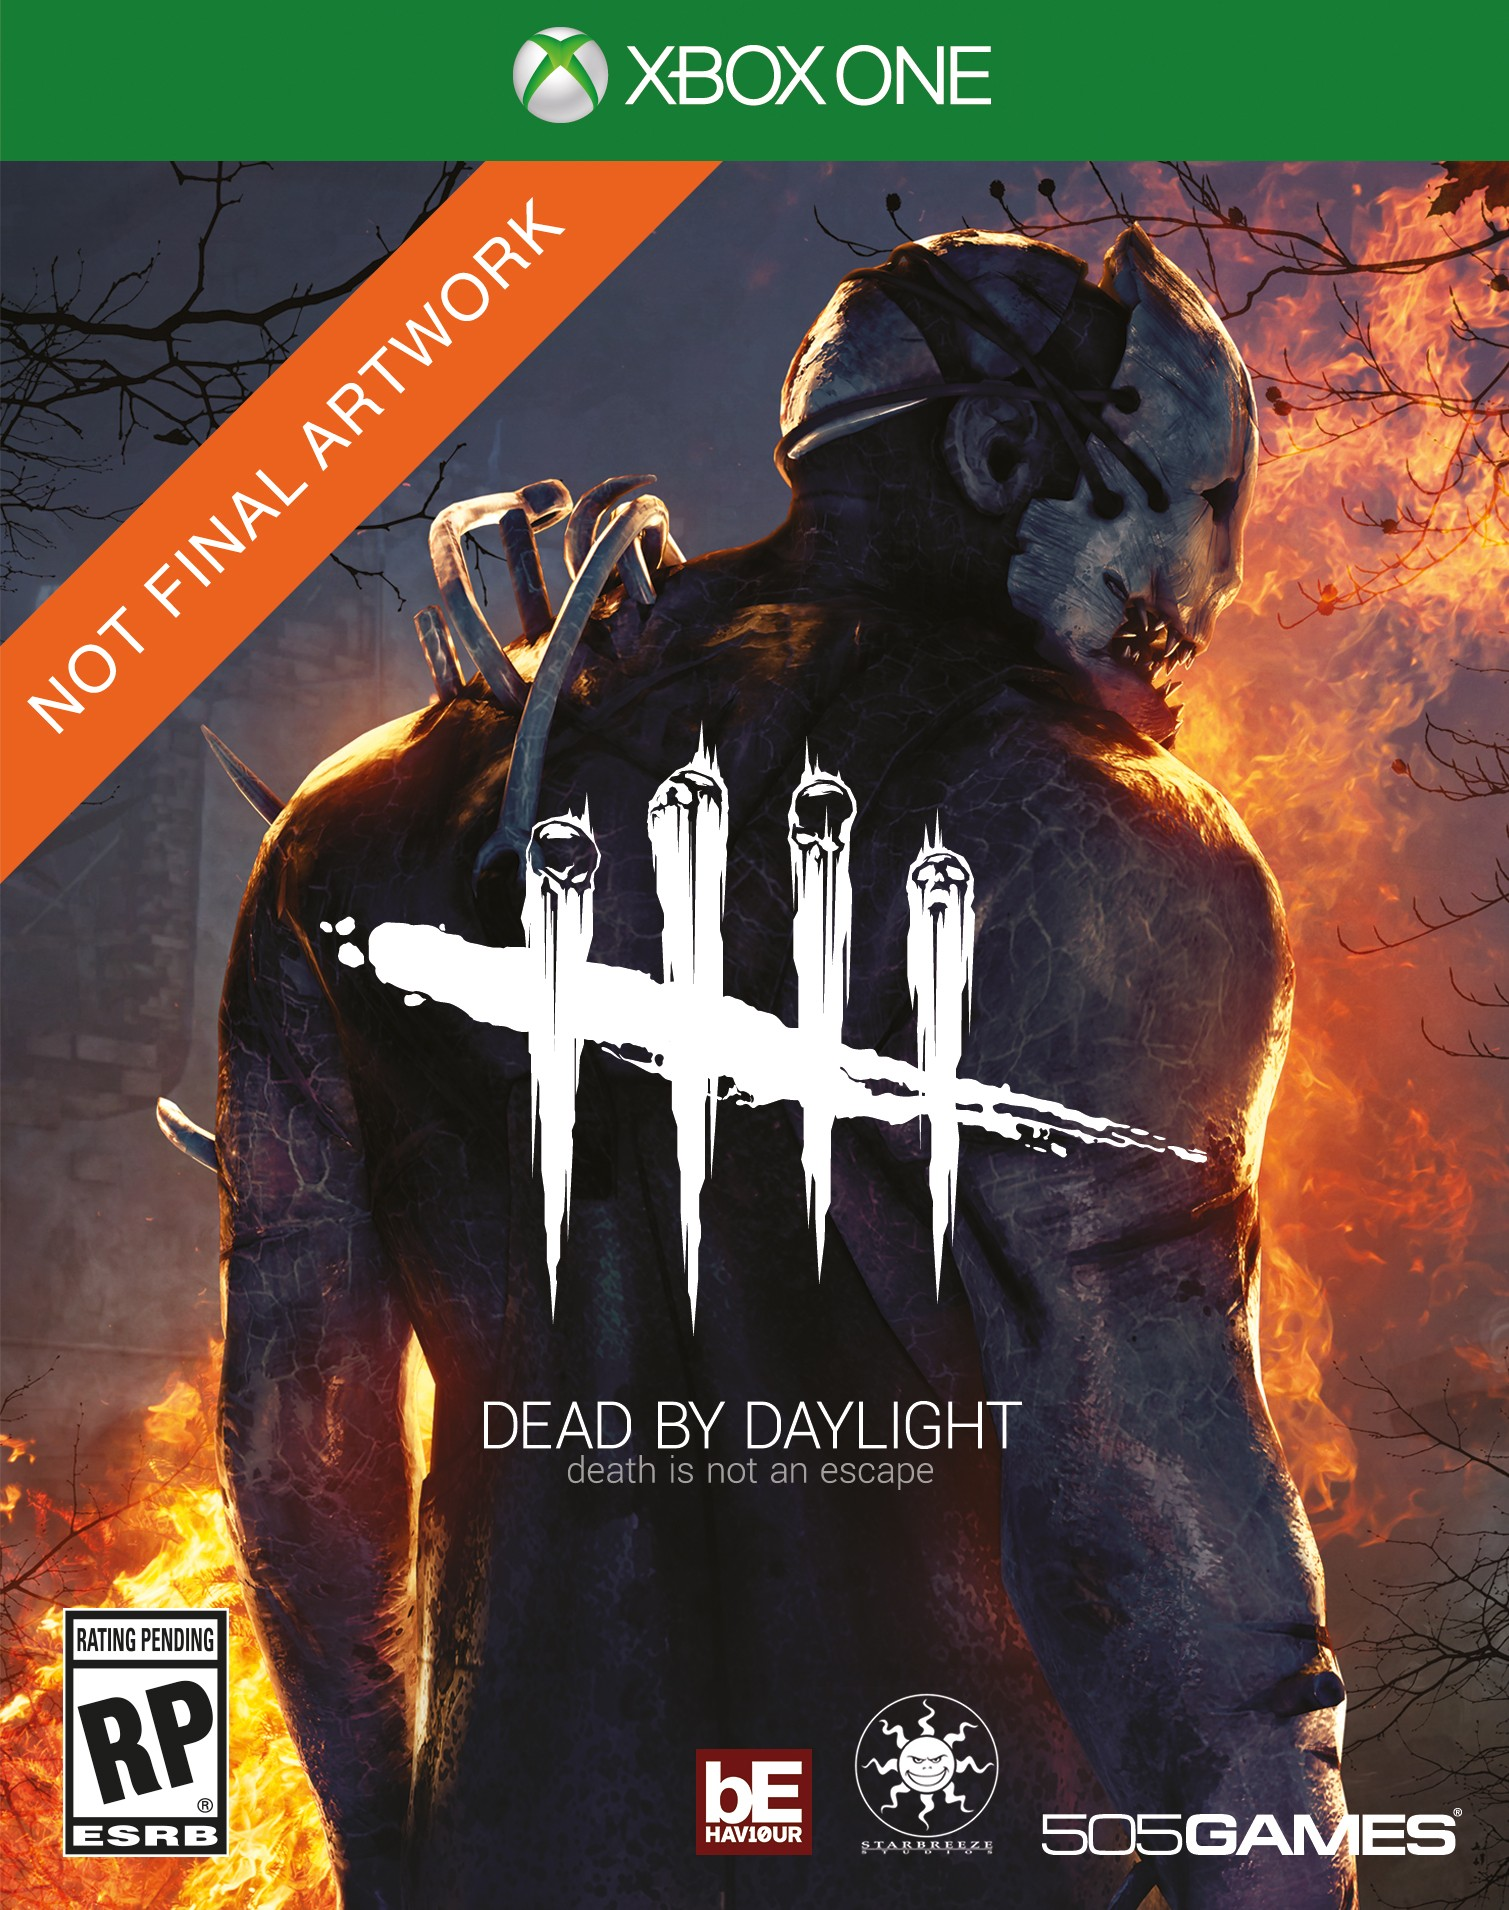 2D XB1 Dead by Daylight ESRB